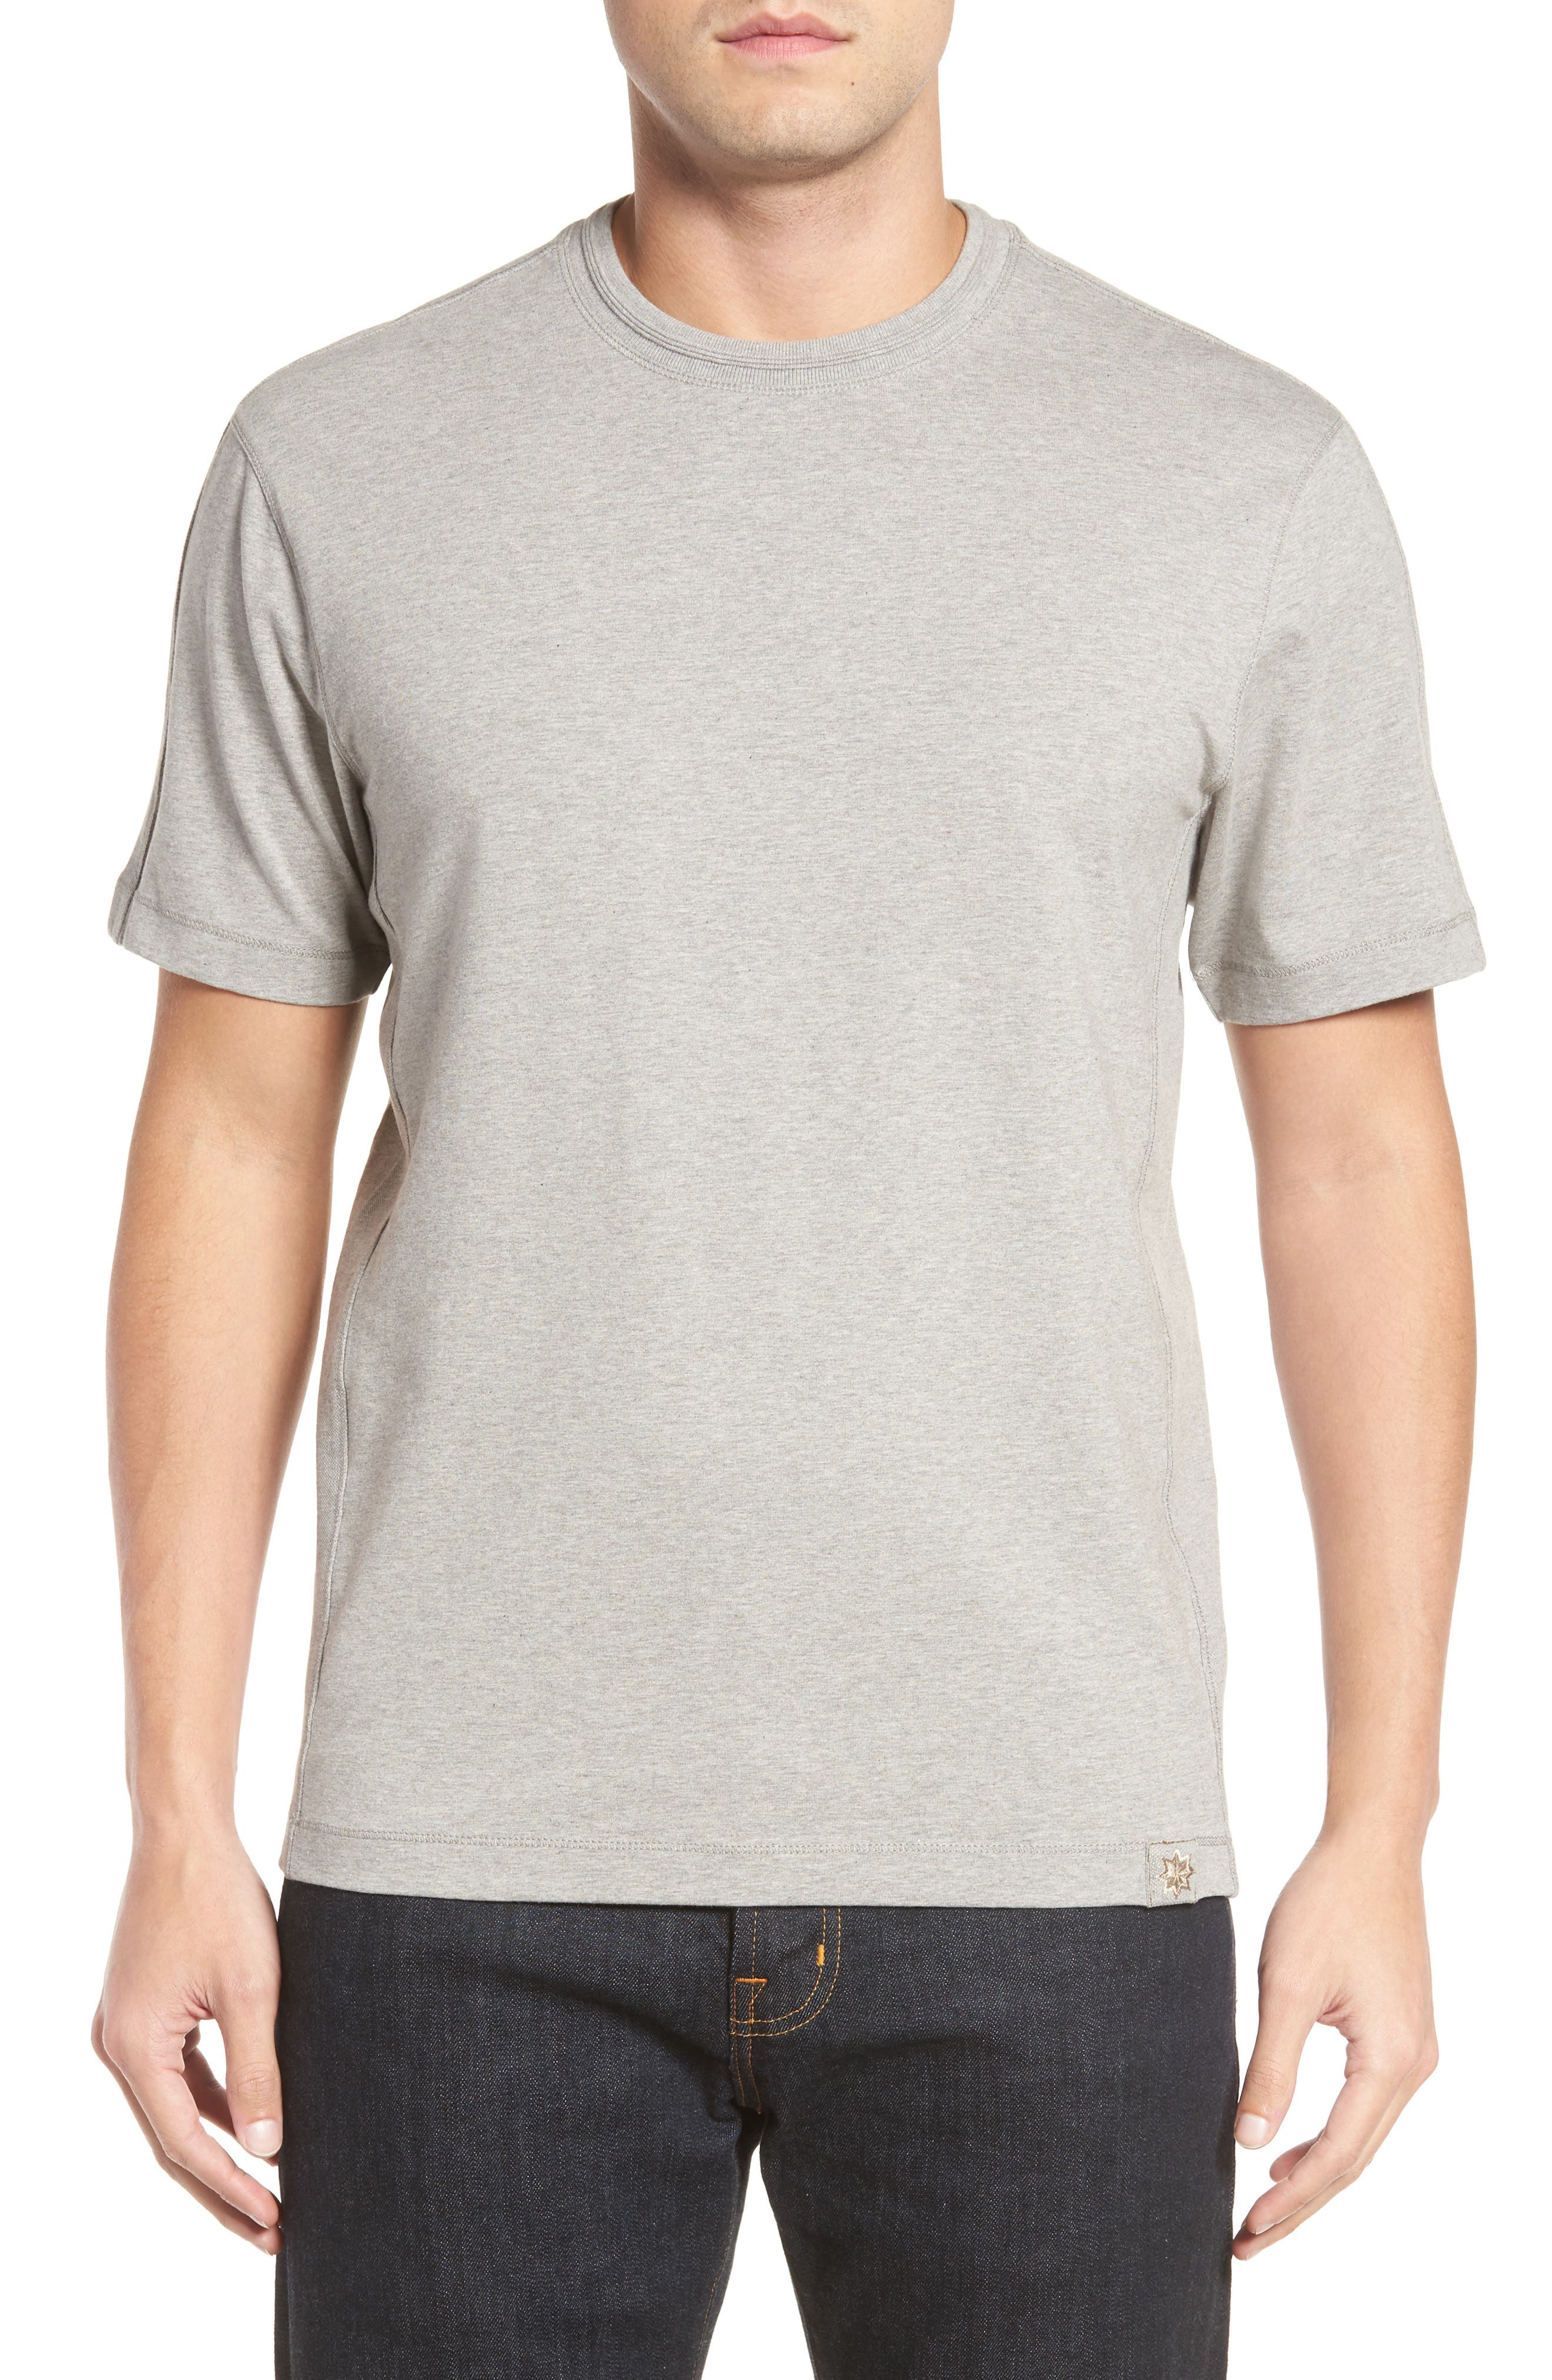 Steve Stretch Jersey T-Shirt,                         Main,                         color, Silver